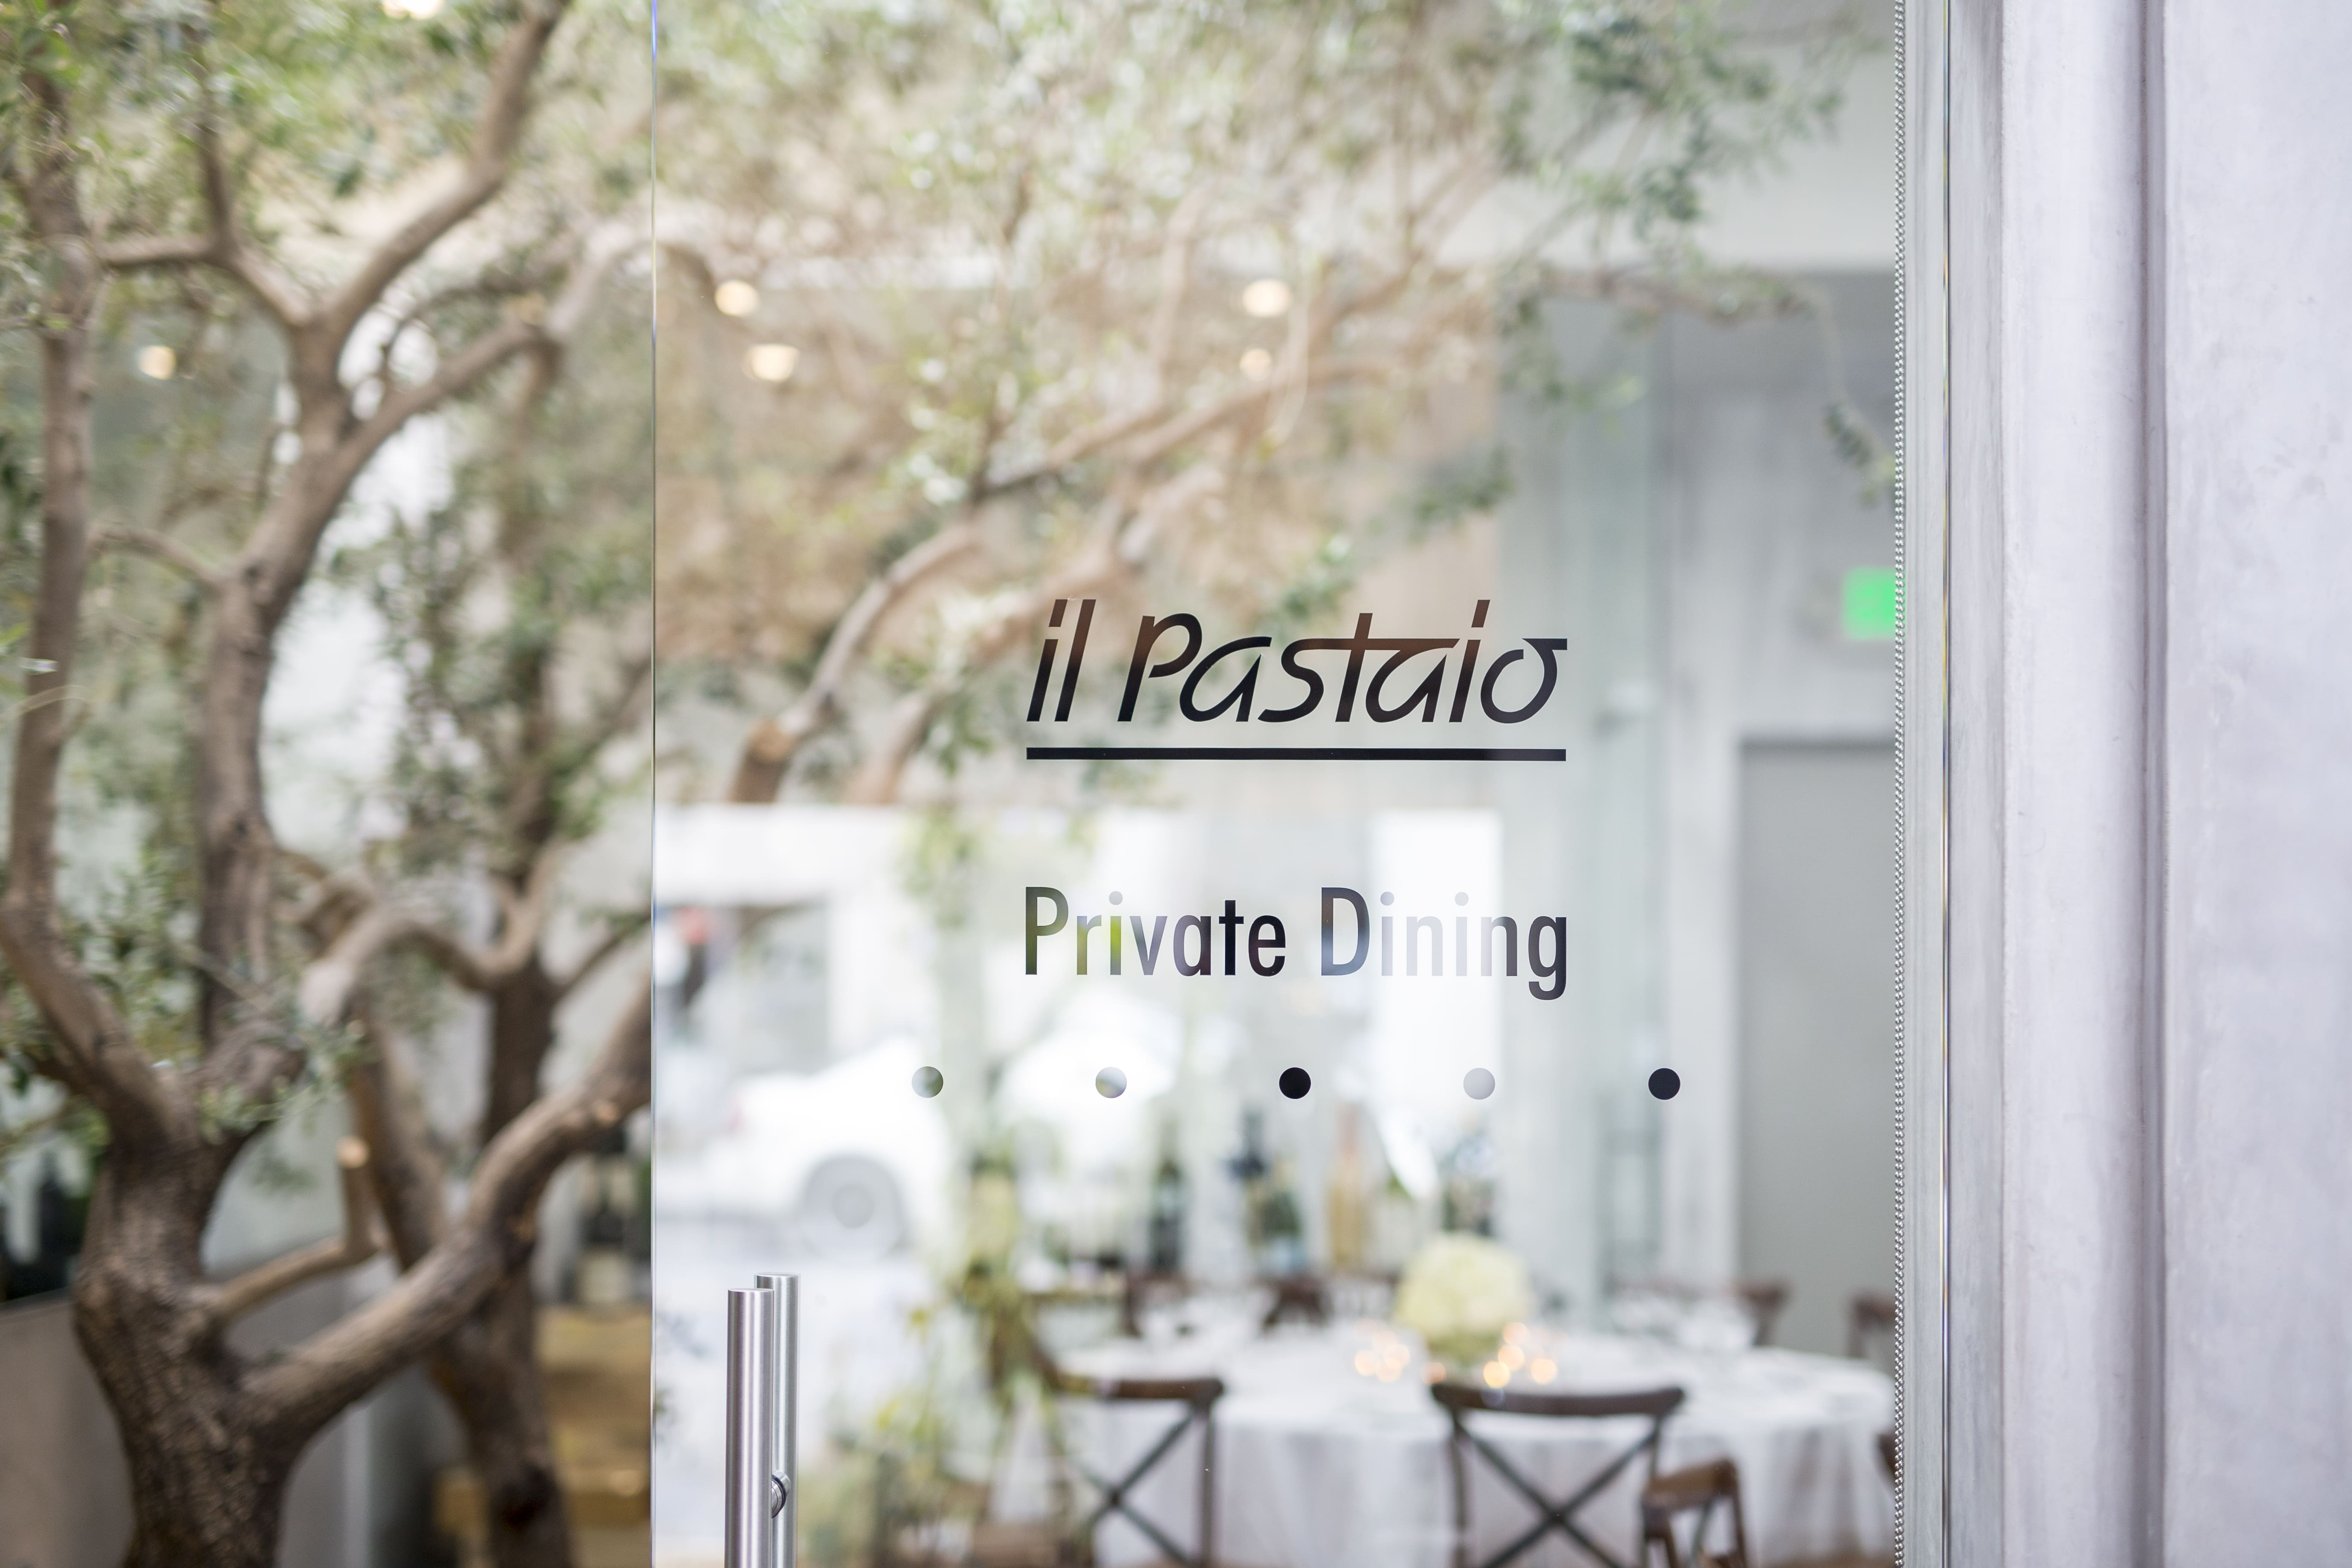 Il Pastaio - Private Dining Entry-1085123686